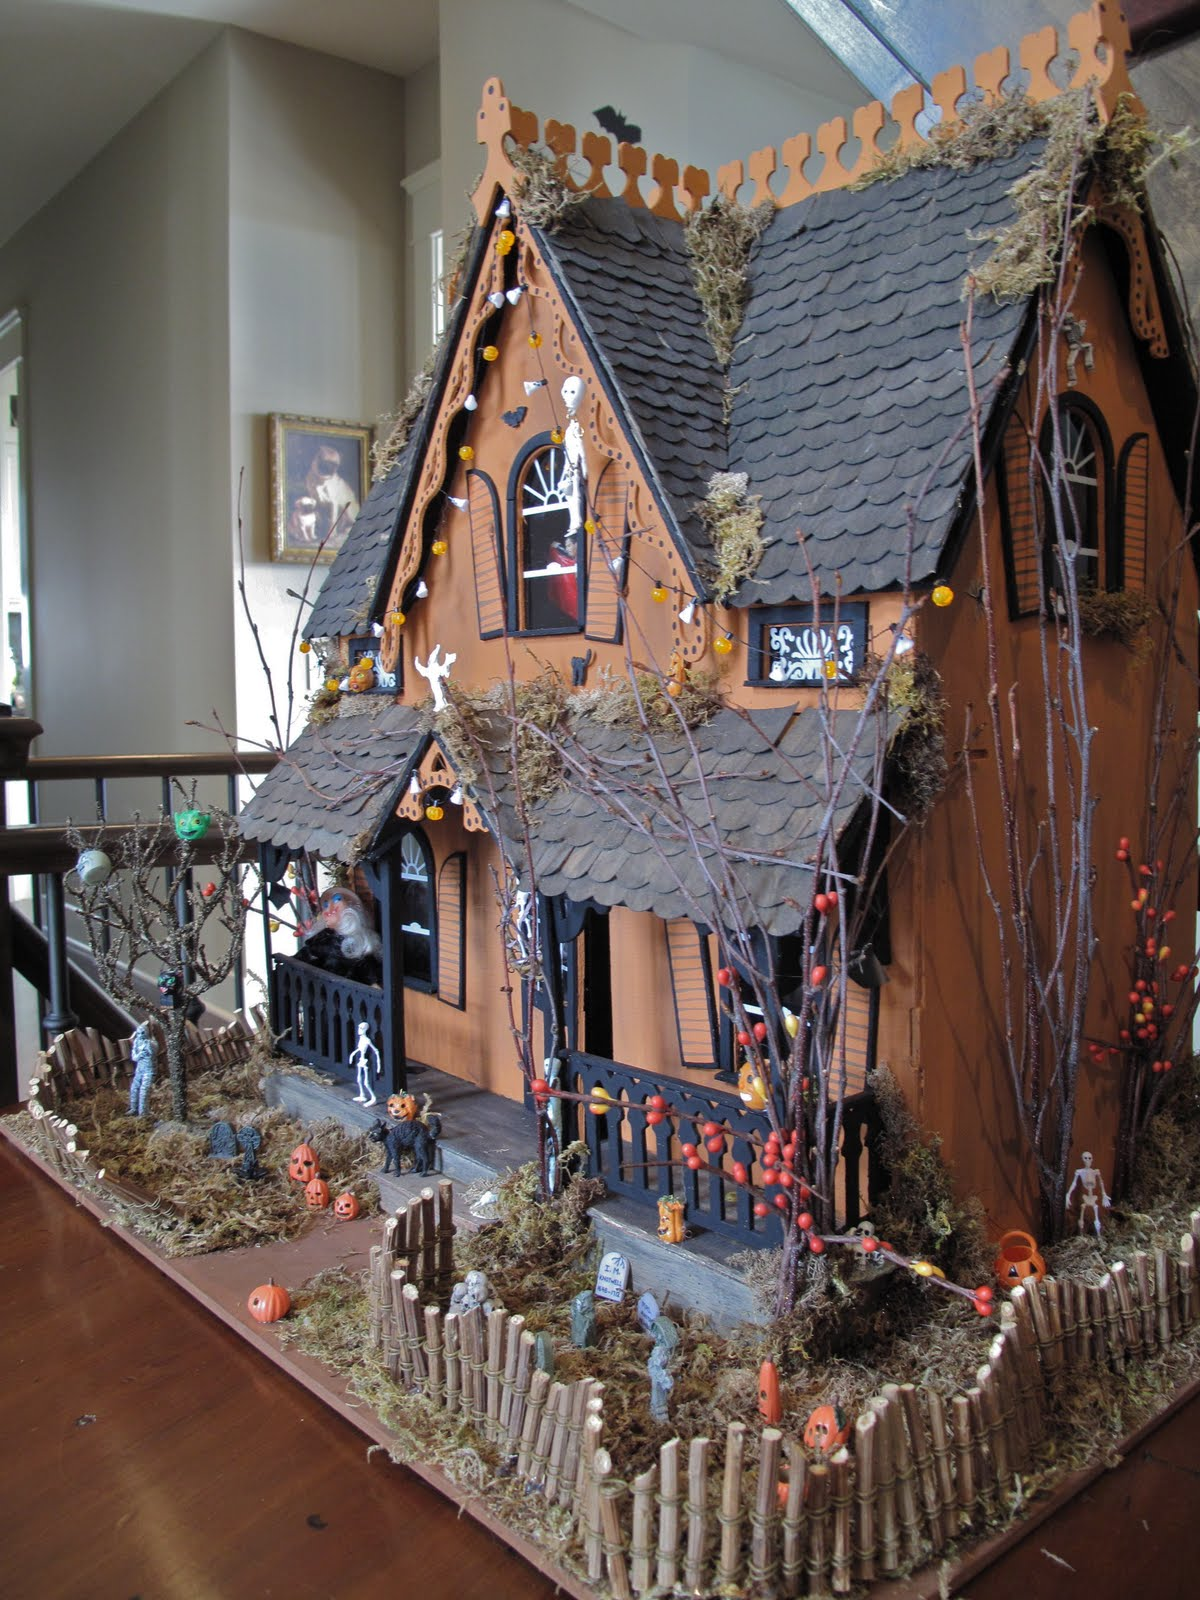 Haunted house ideas on pinterest haunted houses haunted for Good themes for a haunted house